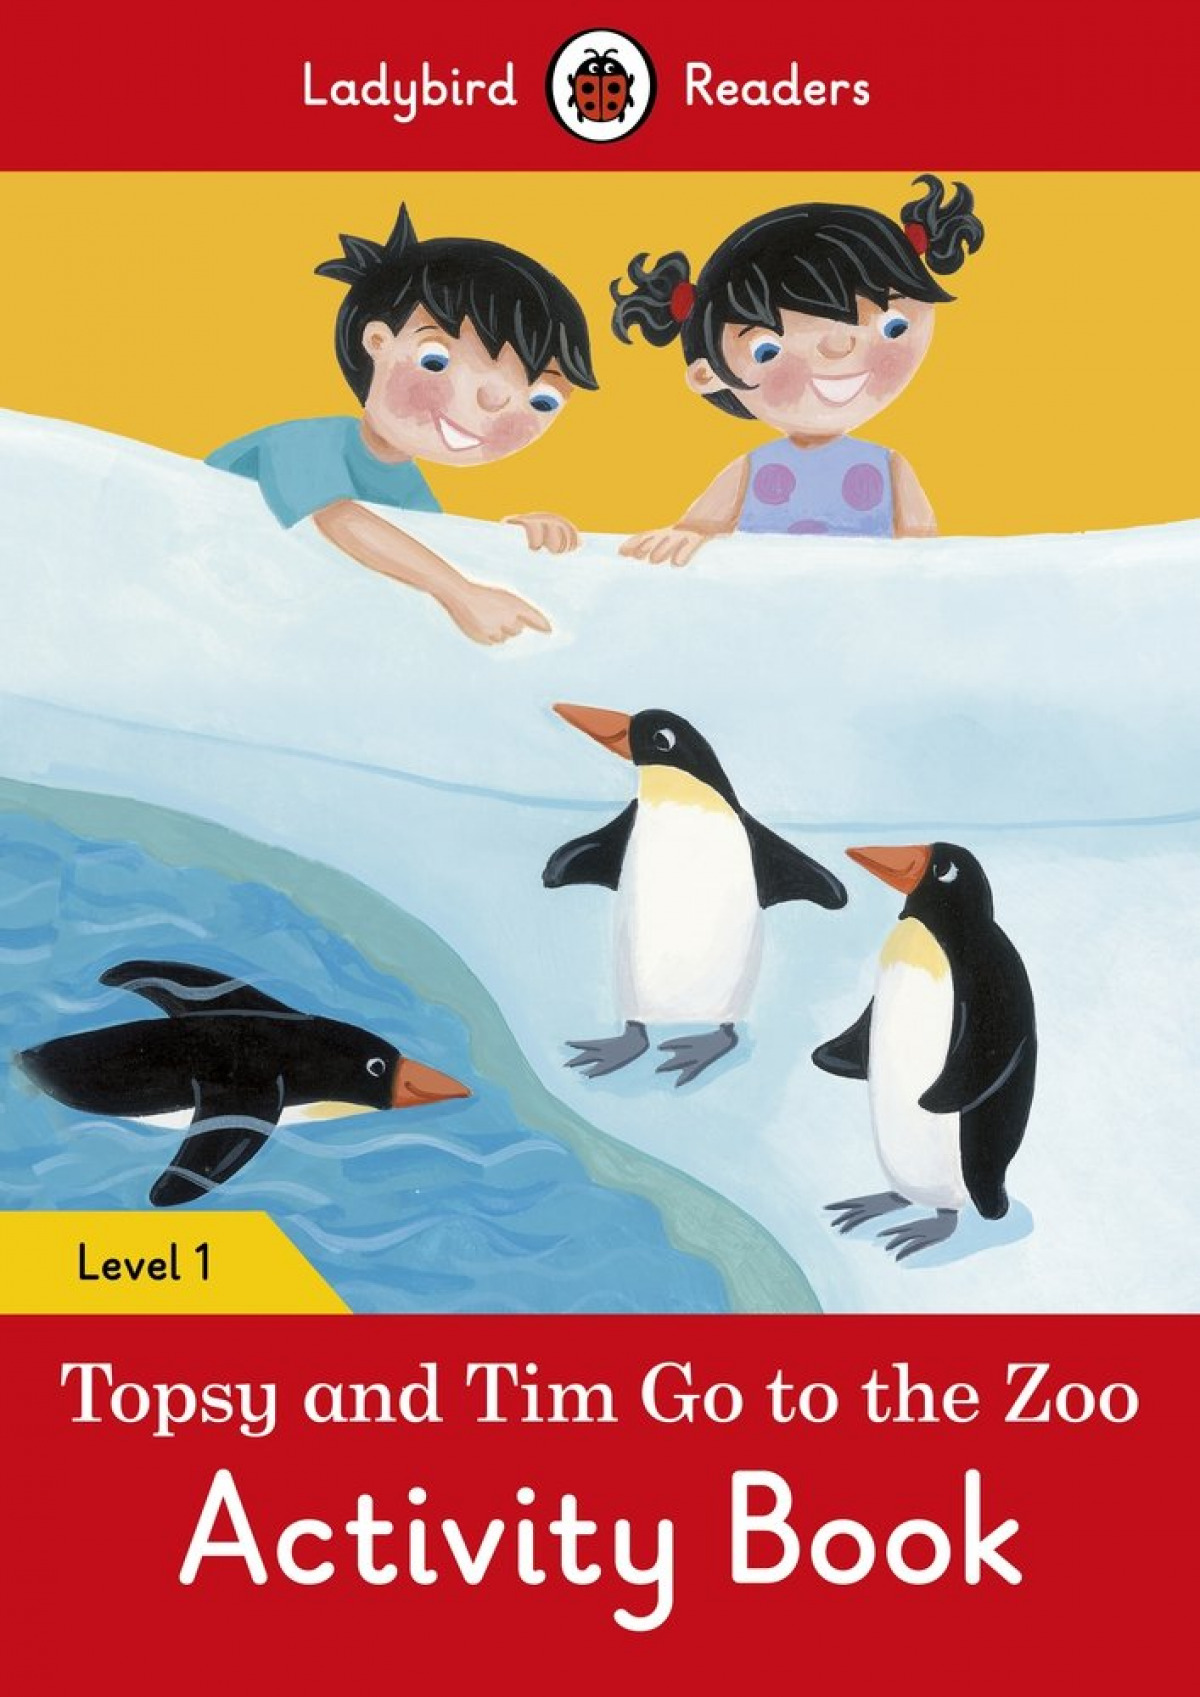 GO TO THE ZOO. TOPSY AND TIM. ACTIVITY BOOK